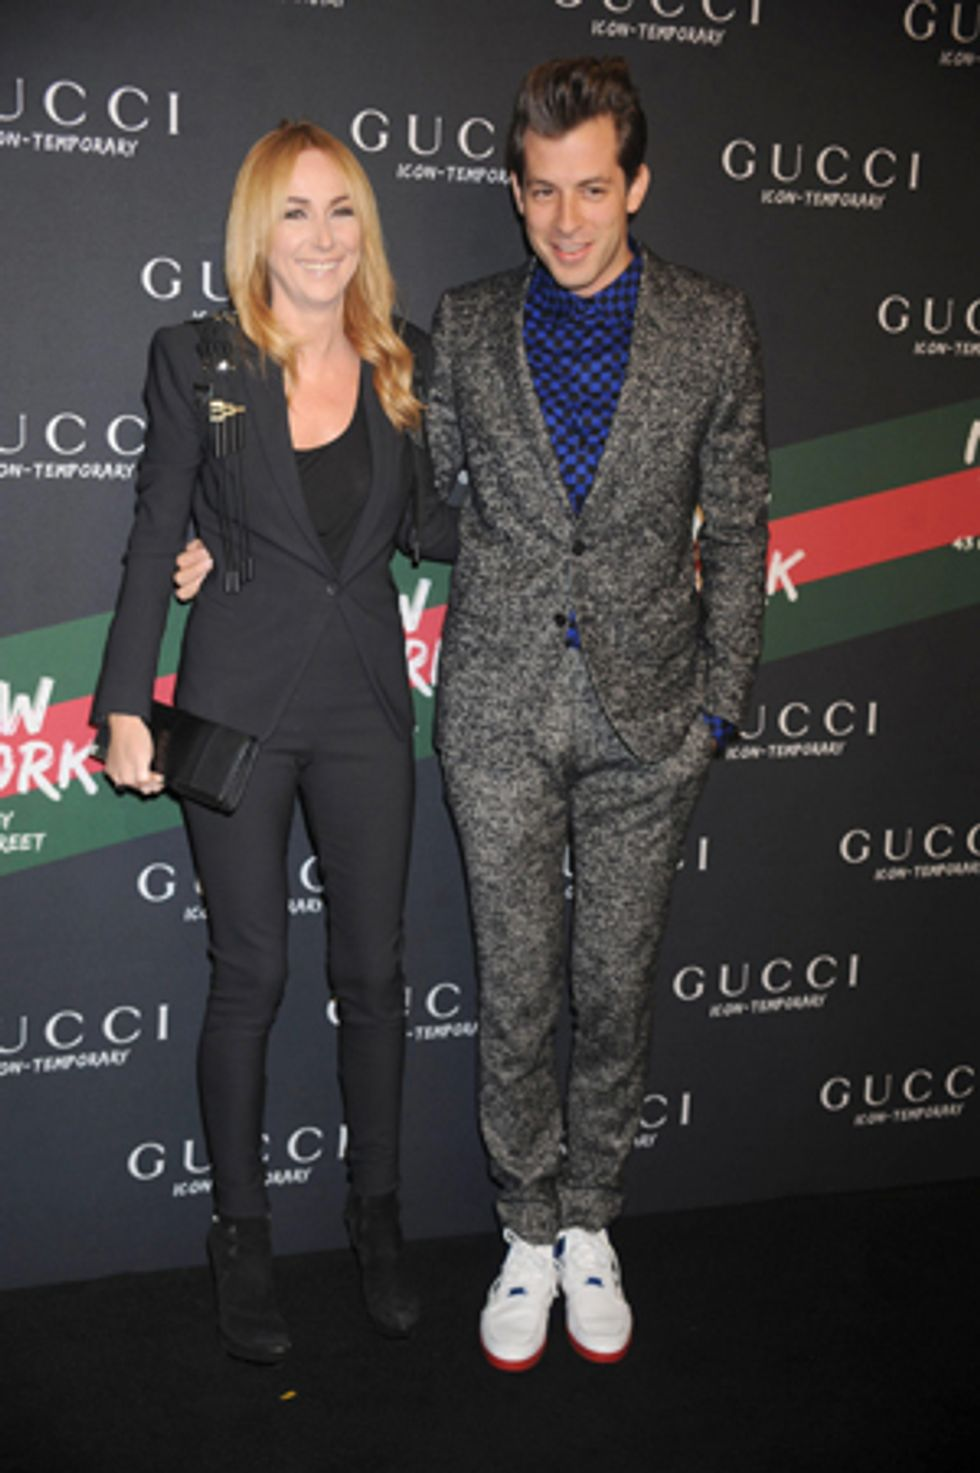 "About Last Night... The ""Gucci Icon-Temporary"" New York Store Opening"